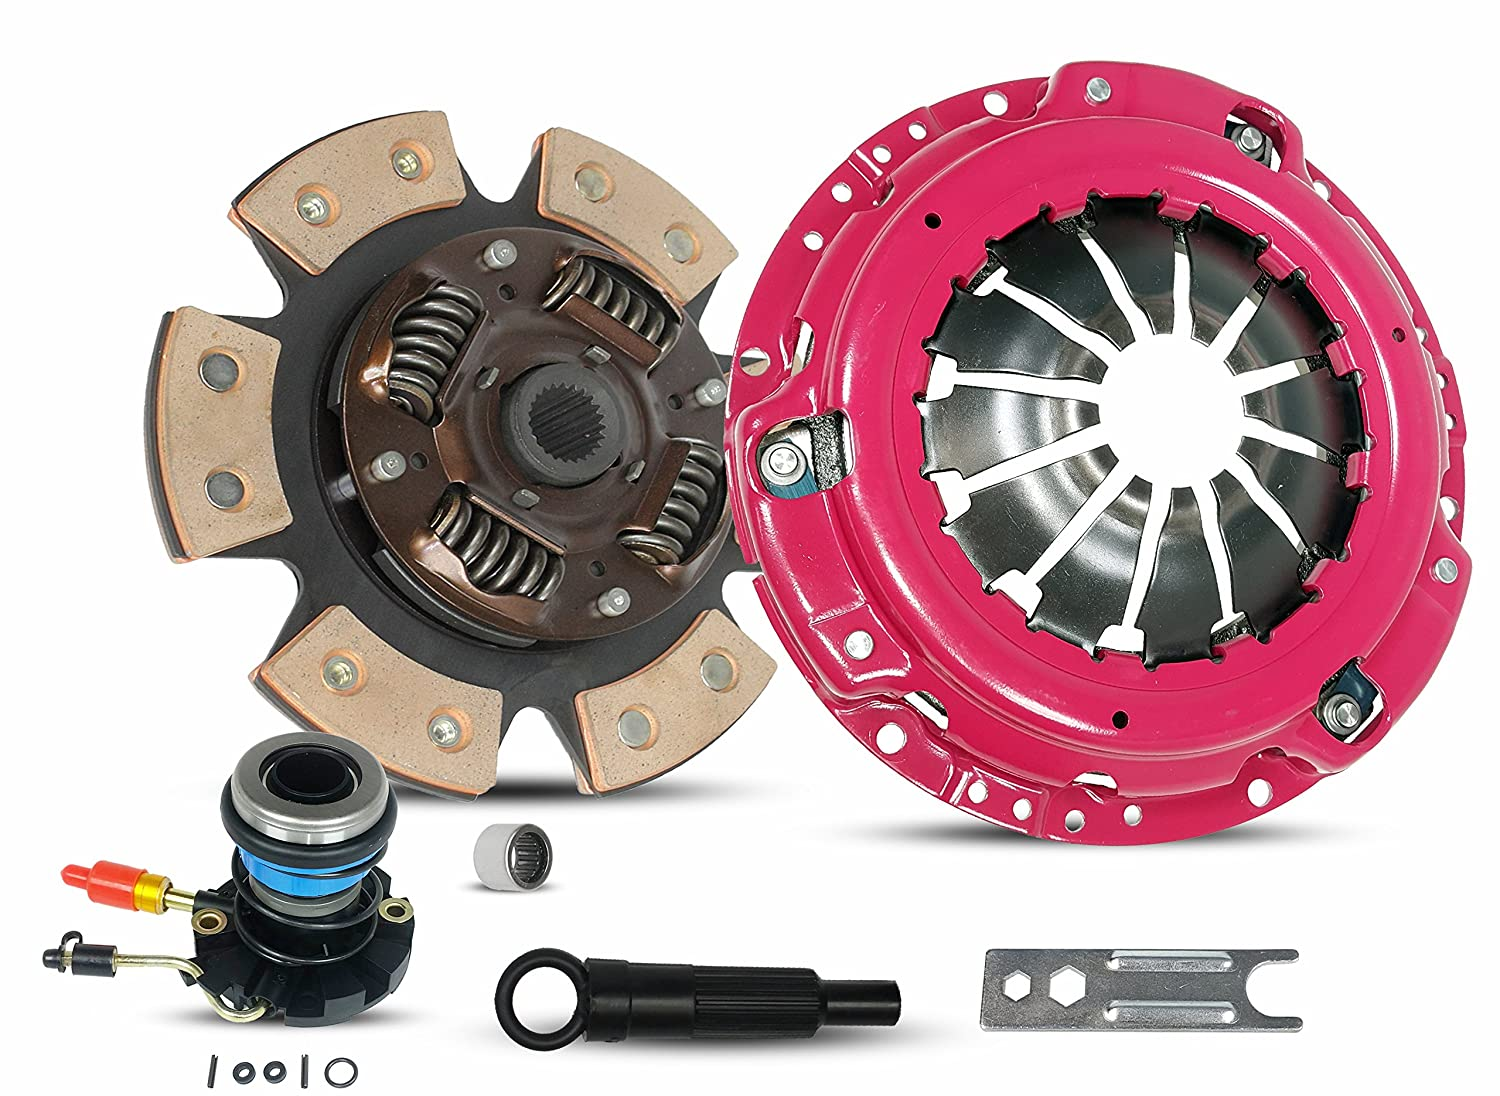 Embrague con esclavo Kit Set Etapa 3 para Ford Ranger pastilla camión: Amazon.es: Coche y moto